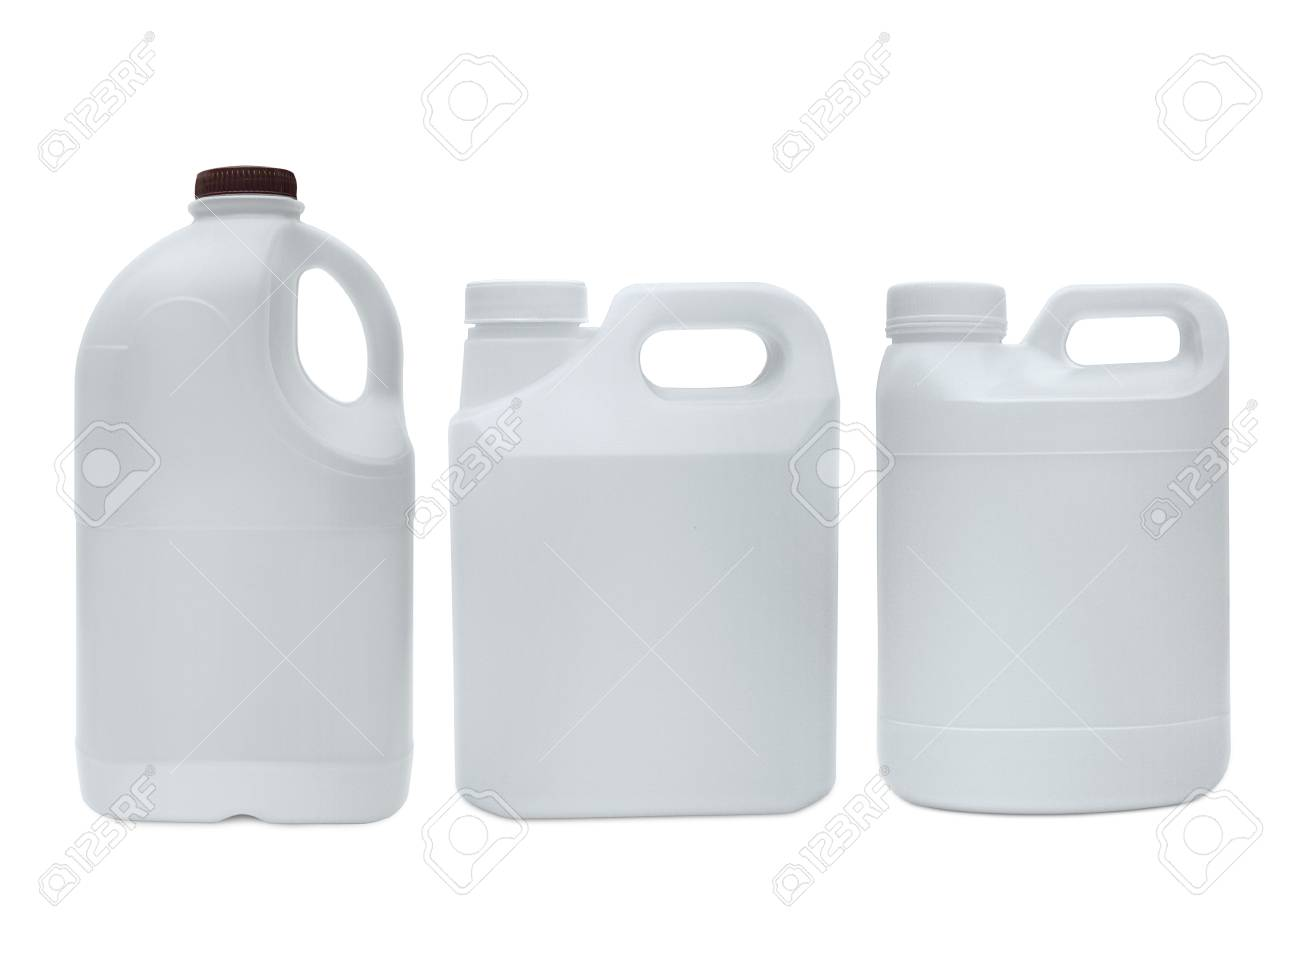 White Plastic Jerry Can Is Isolated On A White Background Stock Photo,  Picture And Royalty Free Image. Image 101982357.